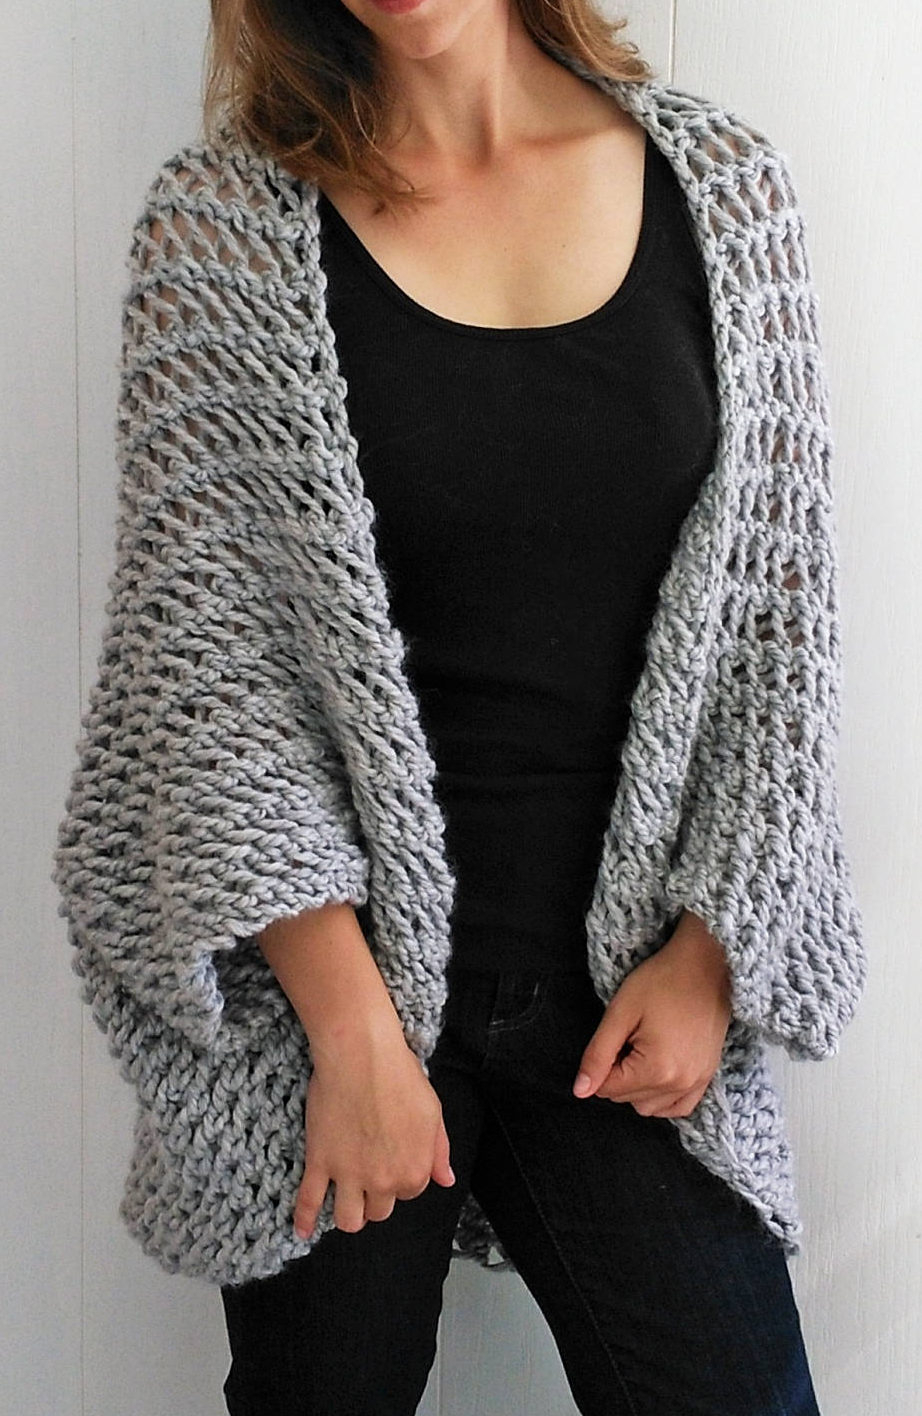 Free Sweater Patterns To Knit Easy Cardigan Knitting Patterns In The Loop Knitting